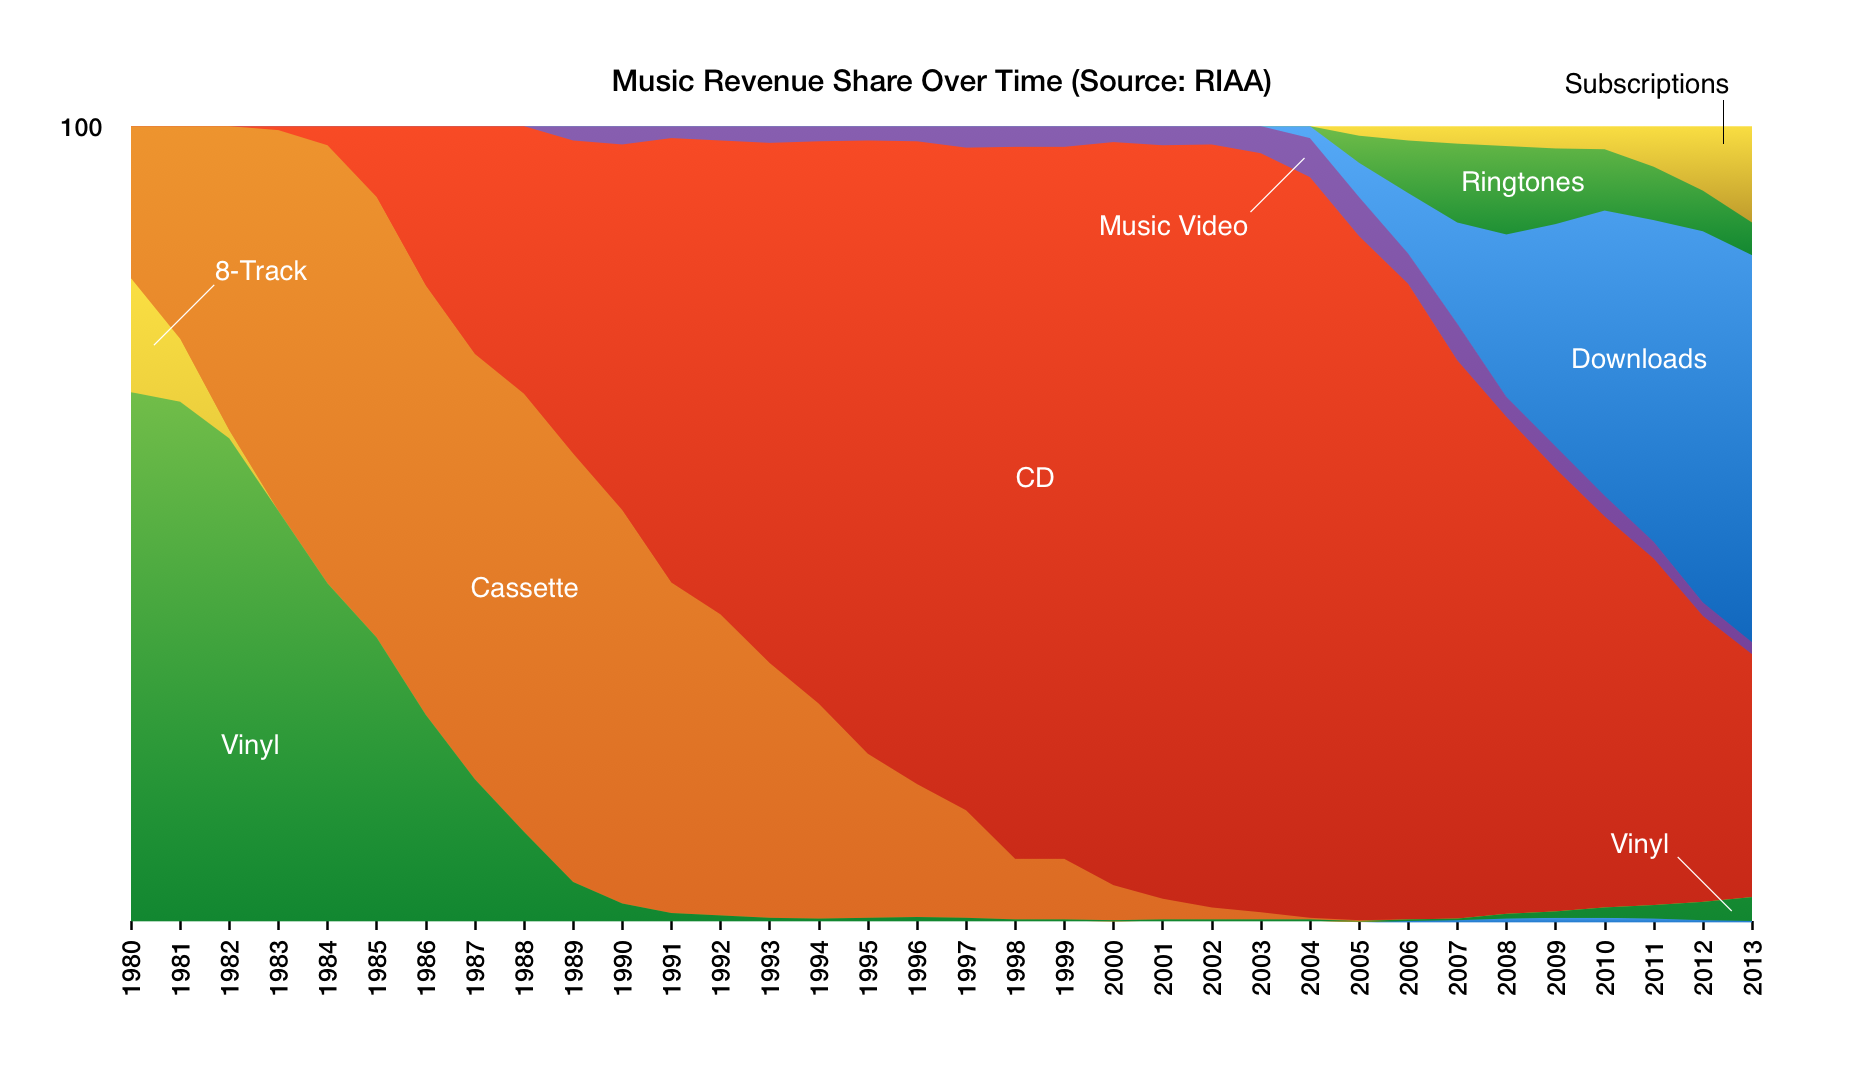 Figure: RIAA revenue share over time 1980-2013